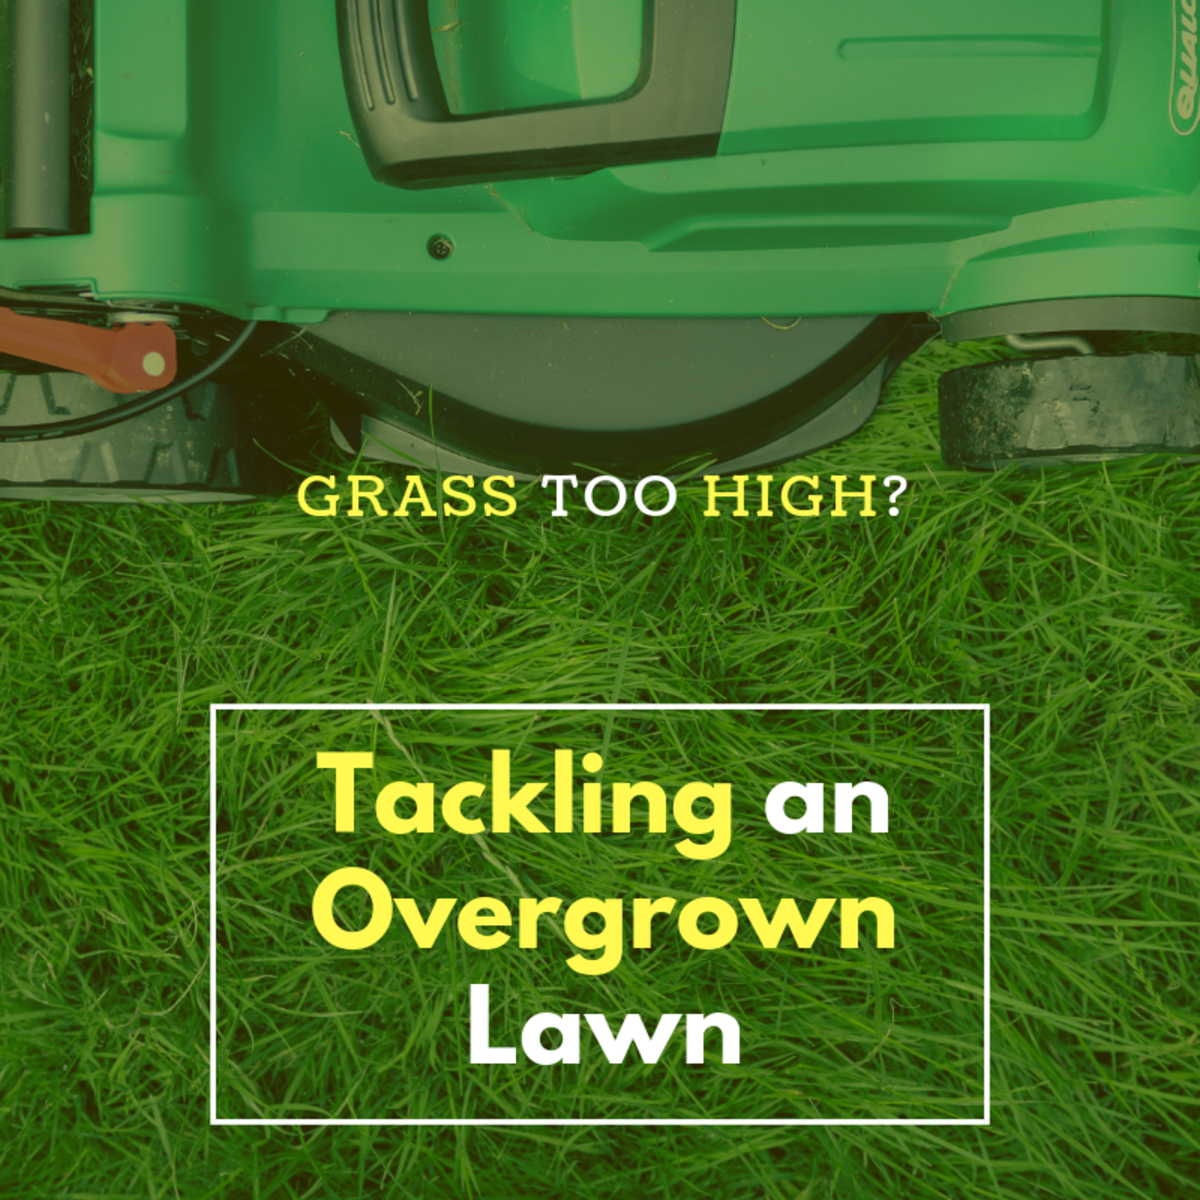 Lawn Too High? How to Cut an Overgrown Lawn | Dengarden